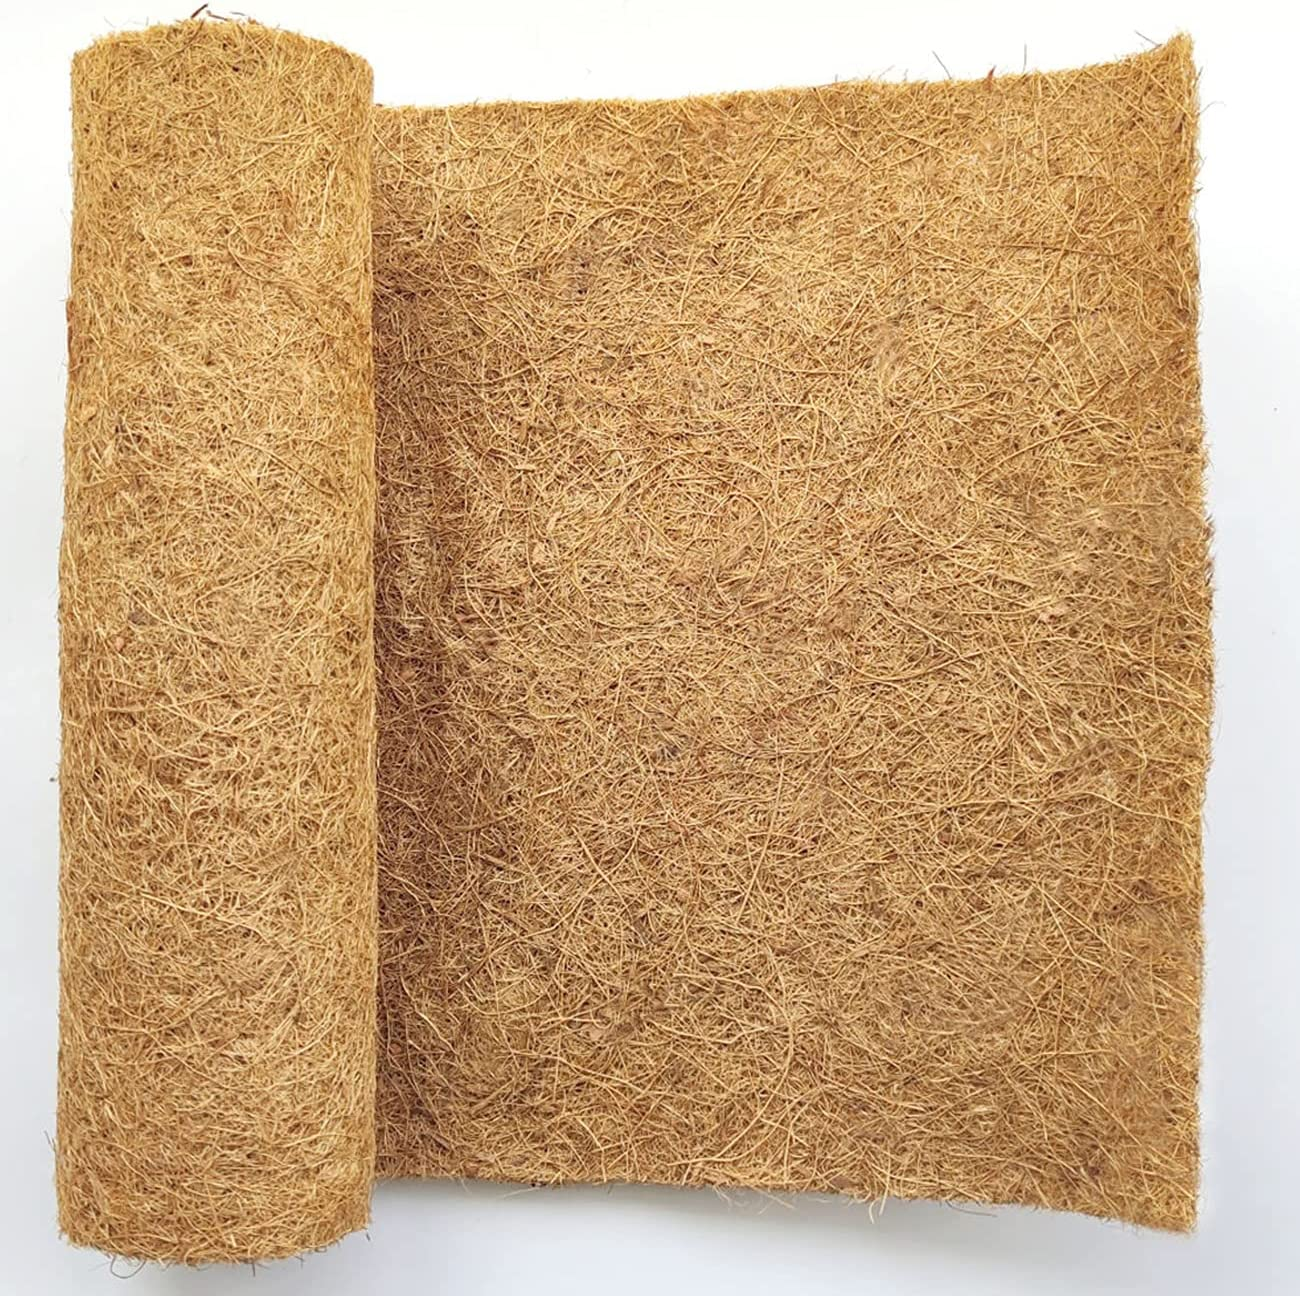 SUNYAY 15x80 inch Natural Coconut Coir Cheap mail order shopping Coco R Fiber Liner Sheets favorite